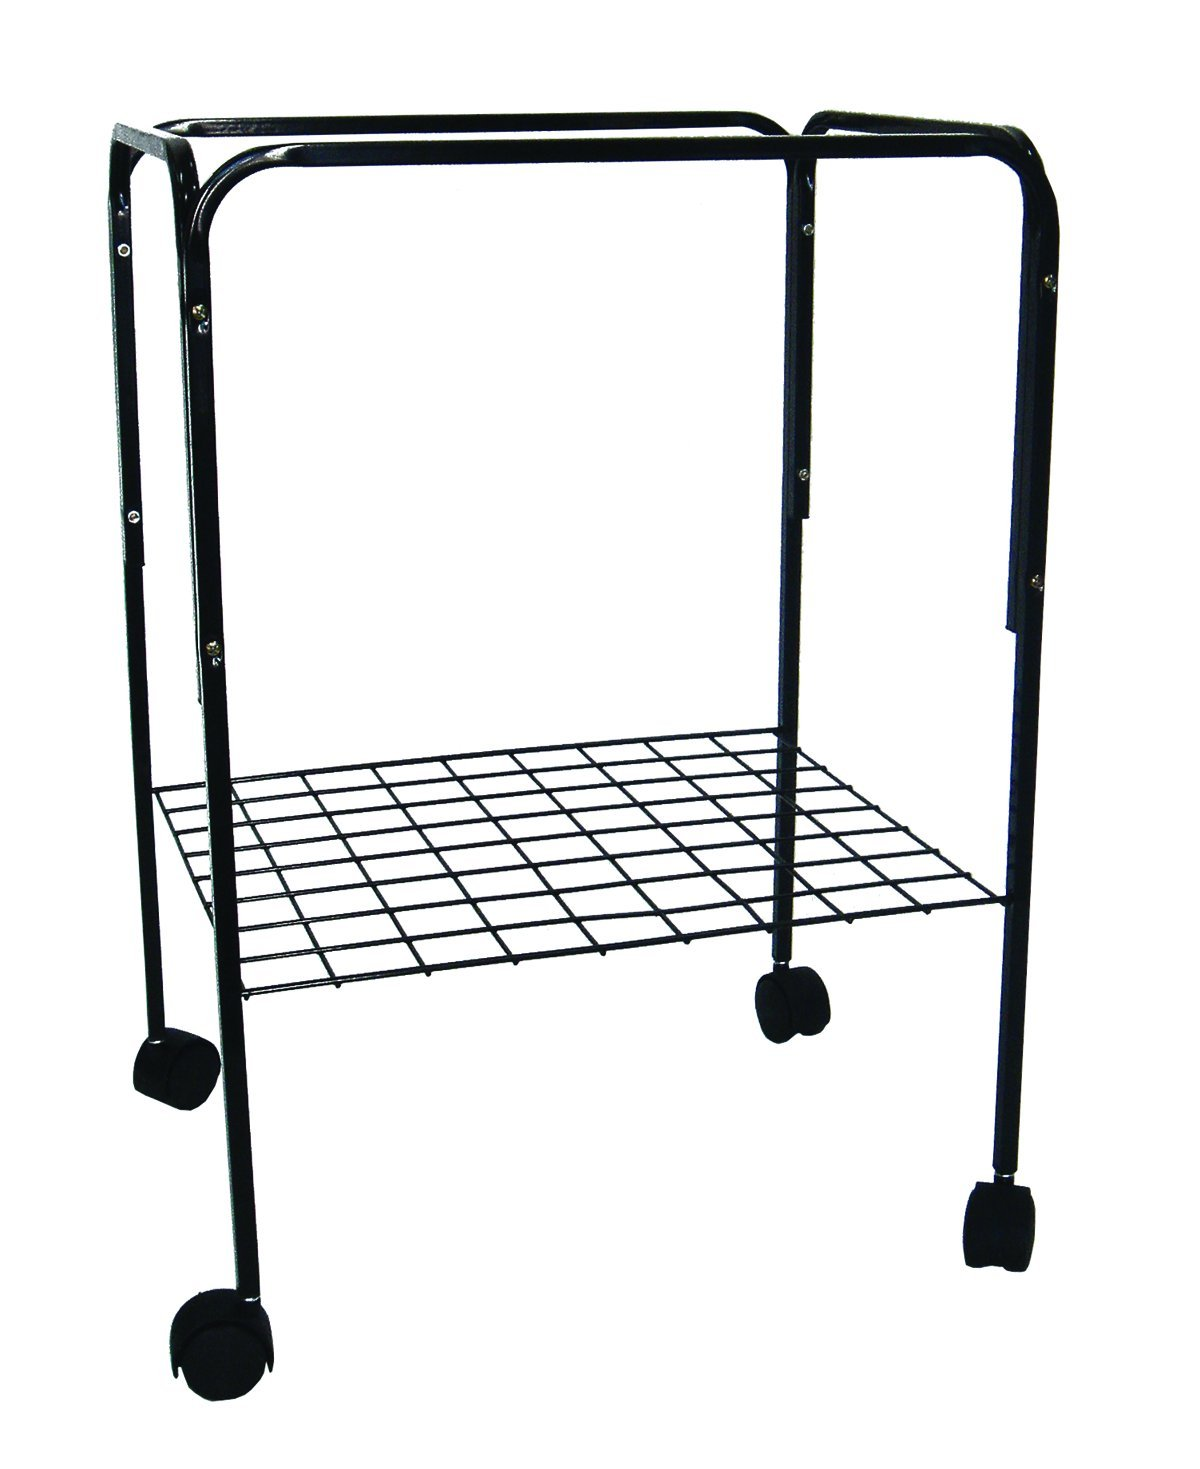 YML 4924BLK Bird Cage Stand, Black by YML